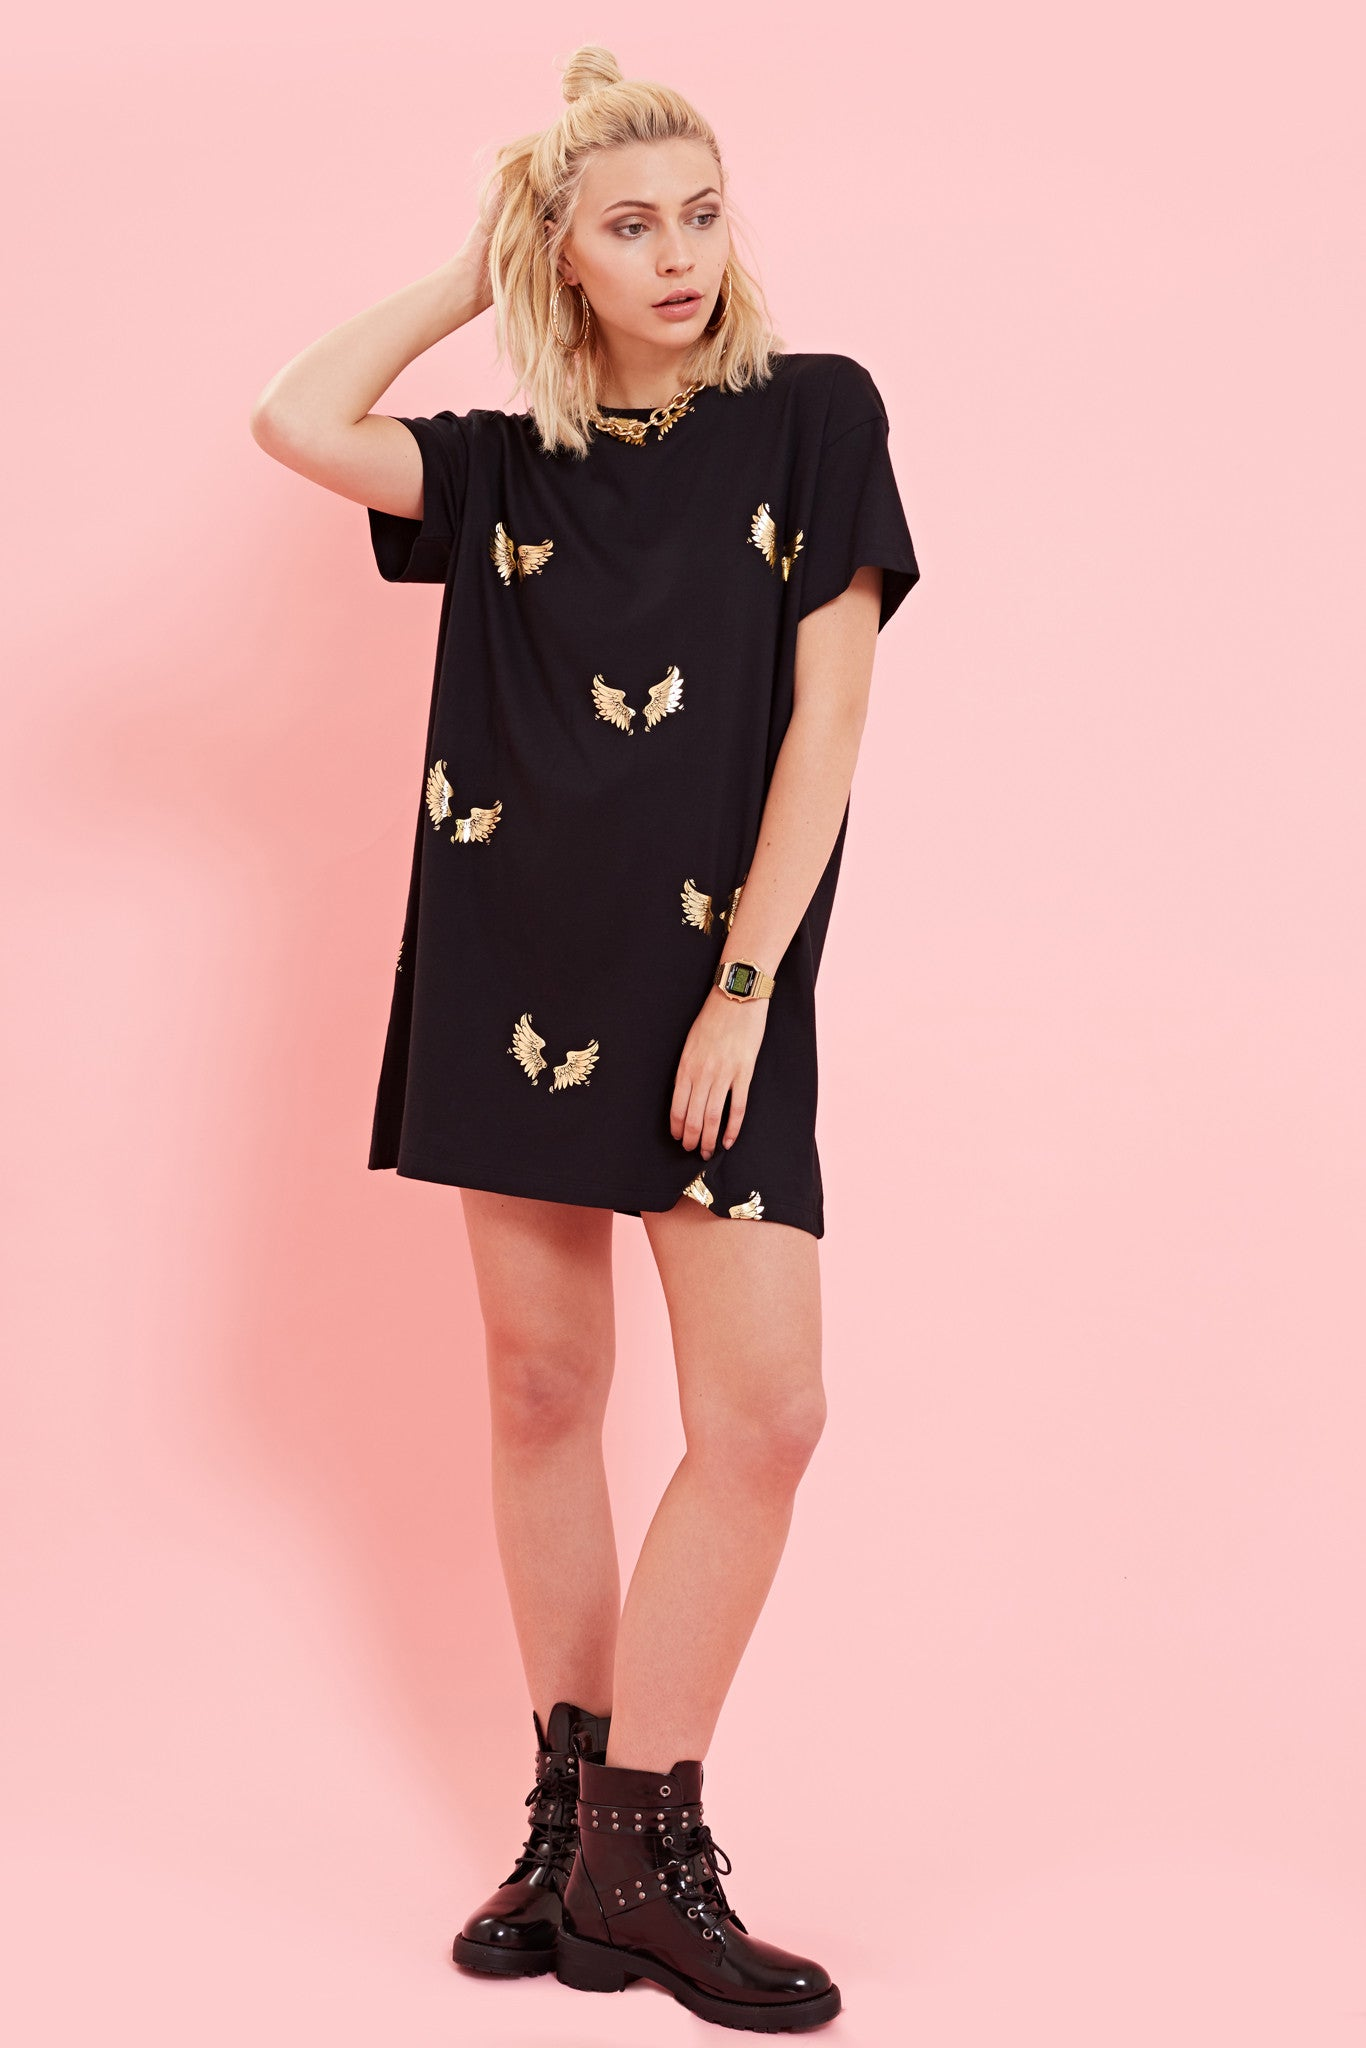 SO FLY WING PRINTED DRESS